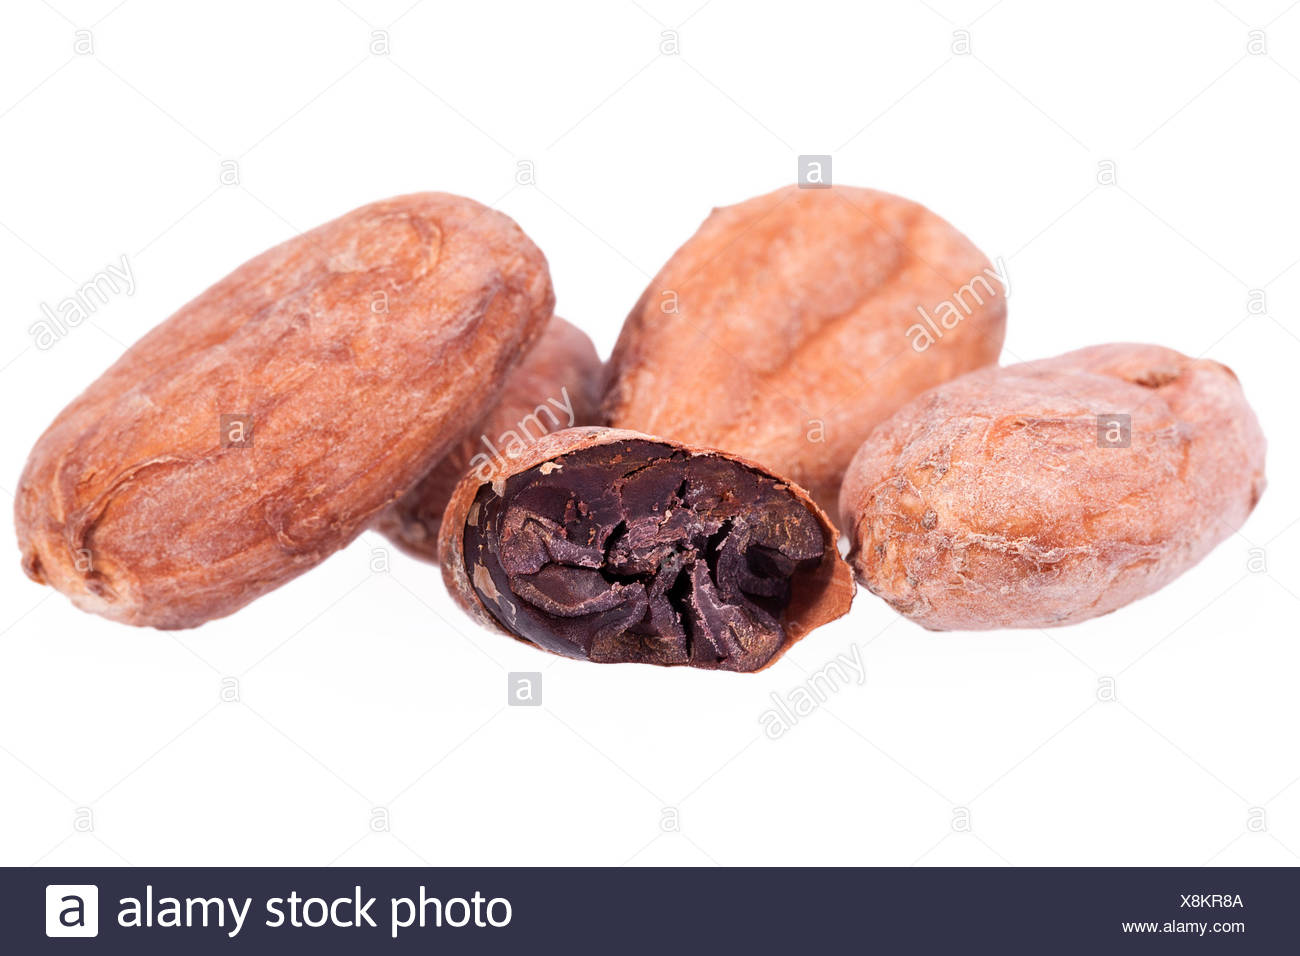 Cocoa beans isolated on white background Stock Photo